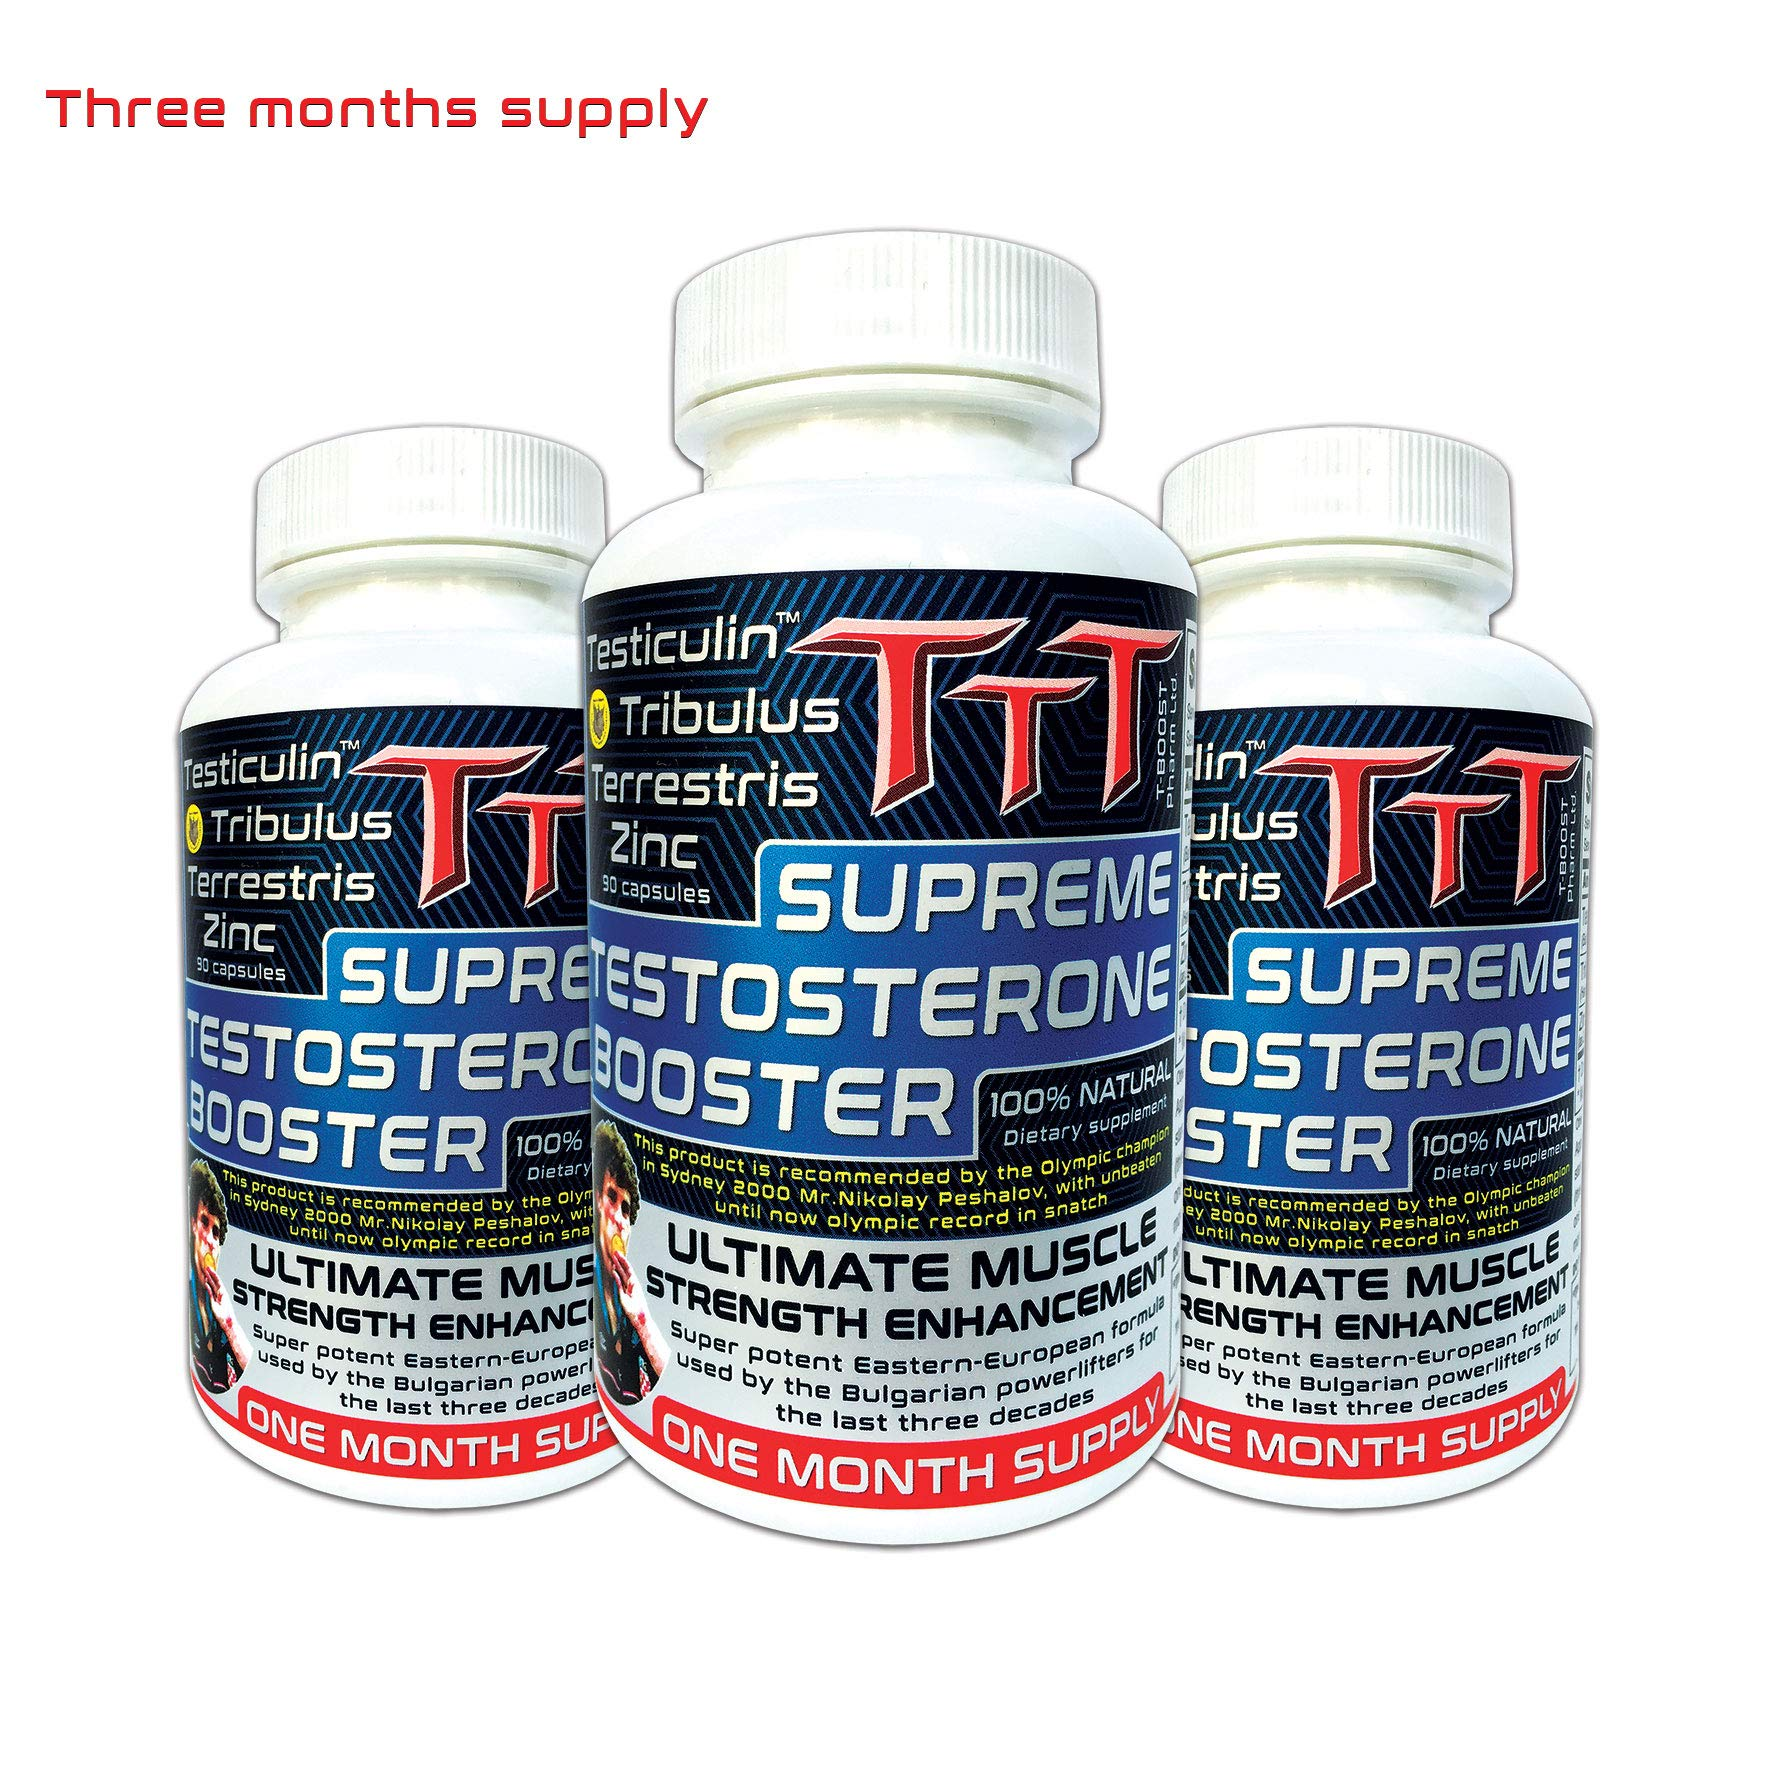 3x1 TTT- The Best Alternative Of The Anabolic Steroids. Supreme Testosterone Booster. Contains Unique Ingredient No one Else Produces it. Delivers A Noticeable Increase In Stamina, Energy and Vitality